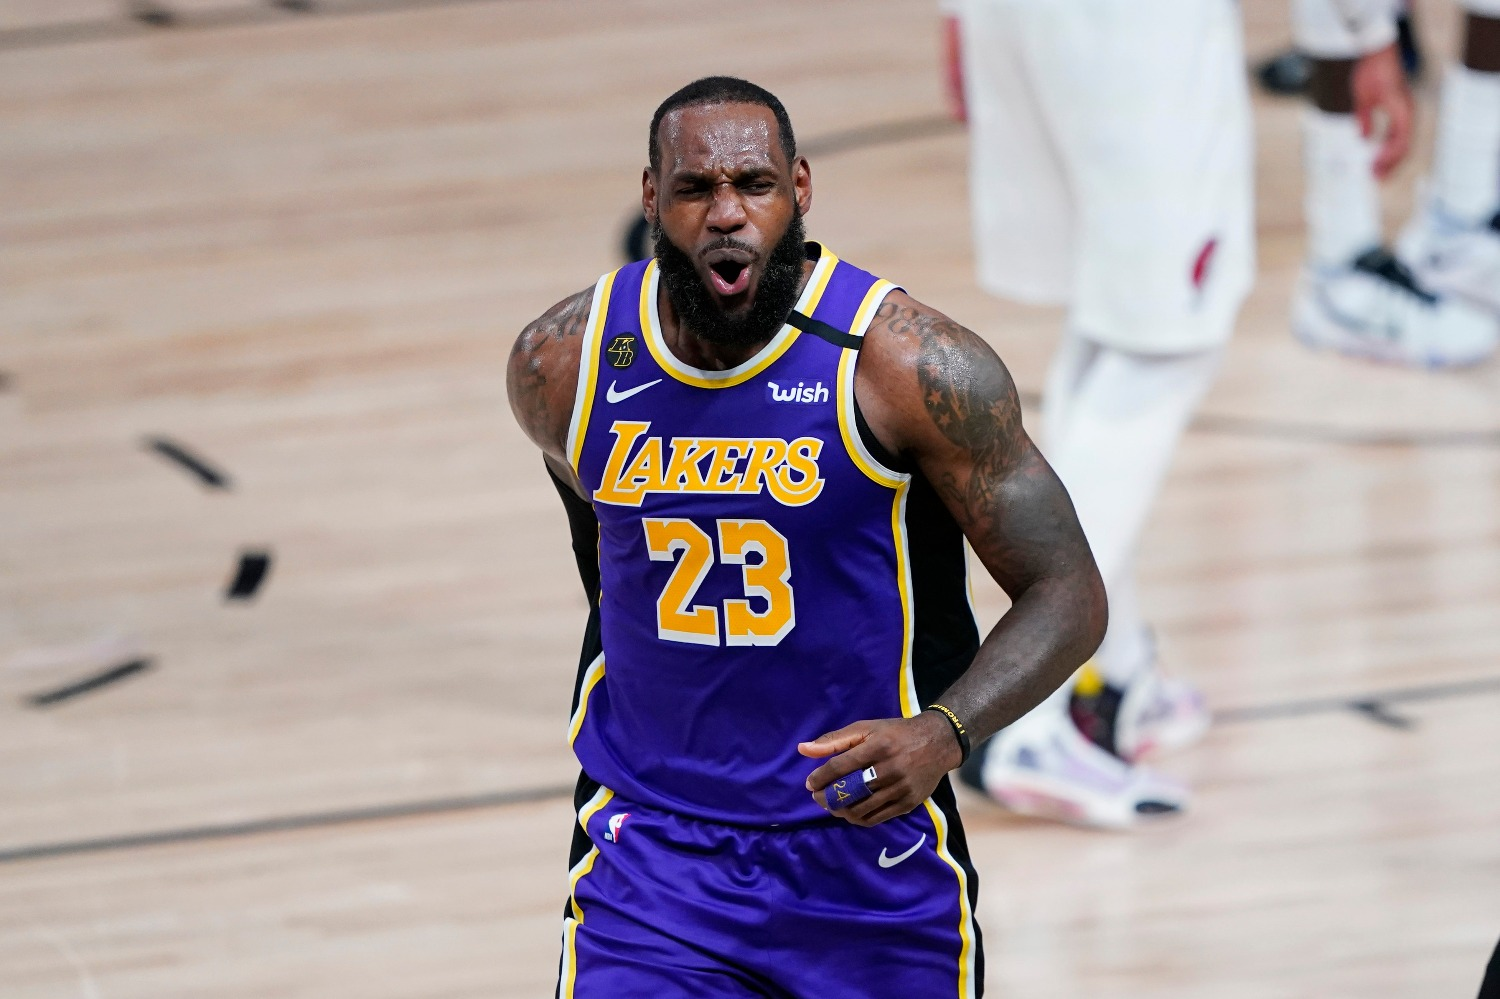 Lakers star LeBron James revealed how he stays sane in the NBA bubble in Orlando.